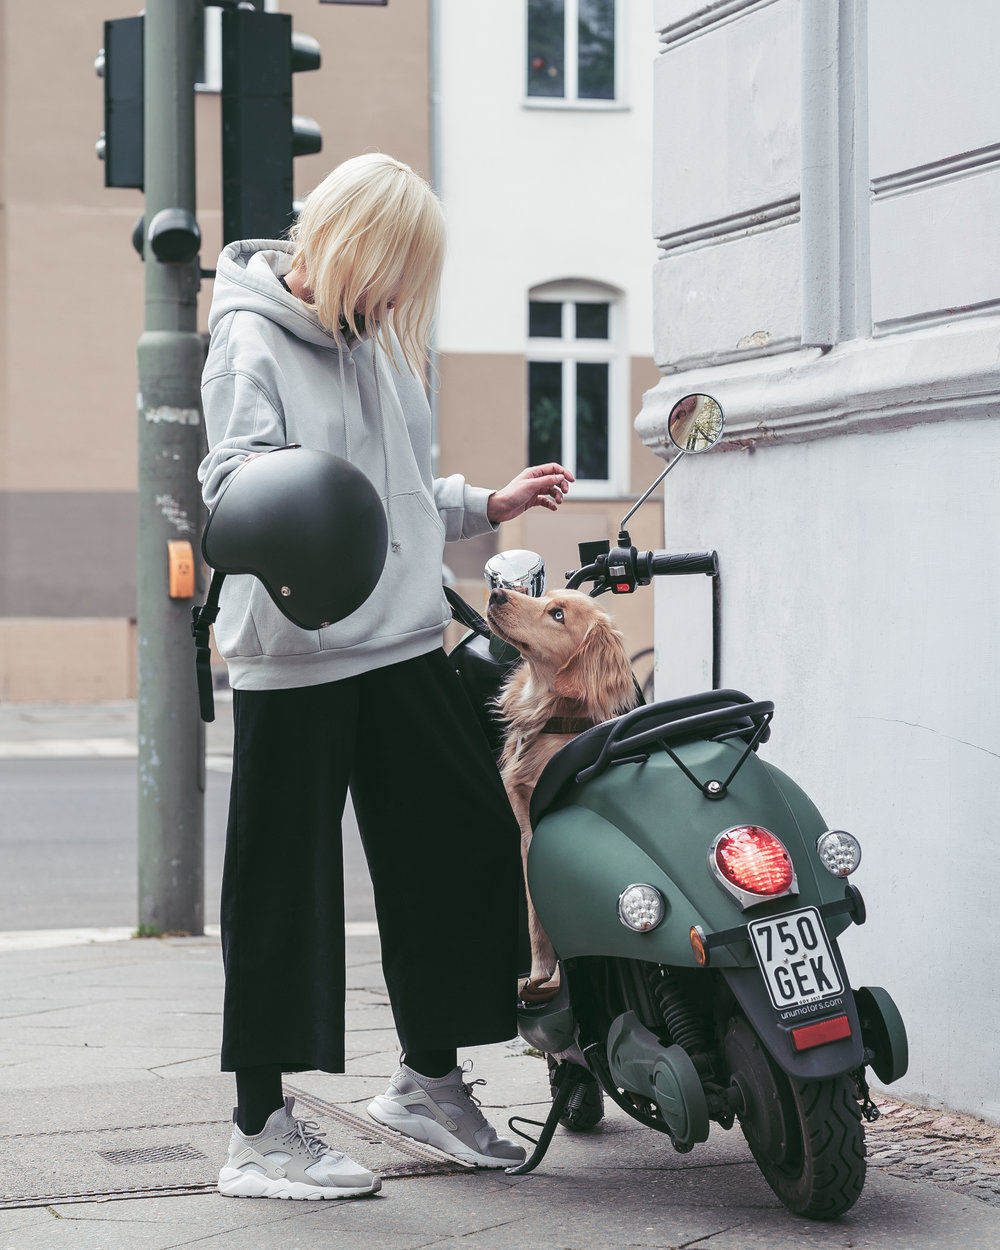 unu and Liz have shared a close connection for over years. Liz uses her unu Scooter Classic to discover new places in her home city, Berlin.